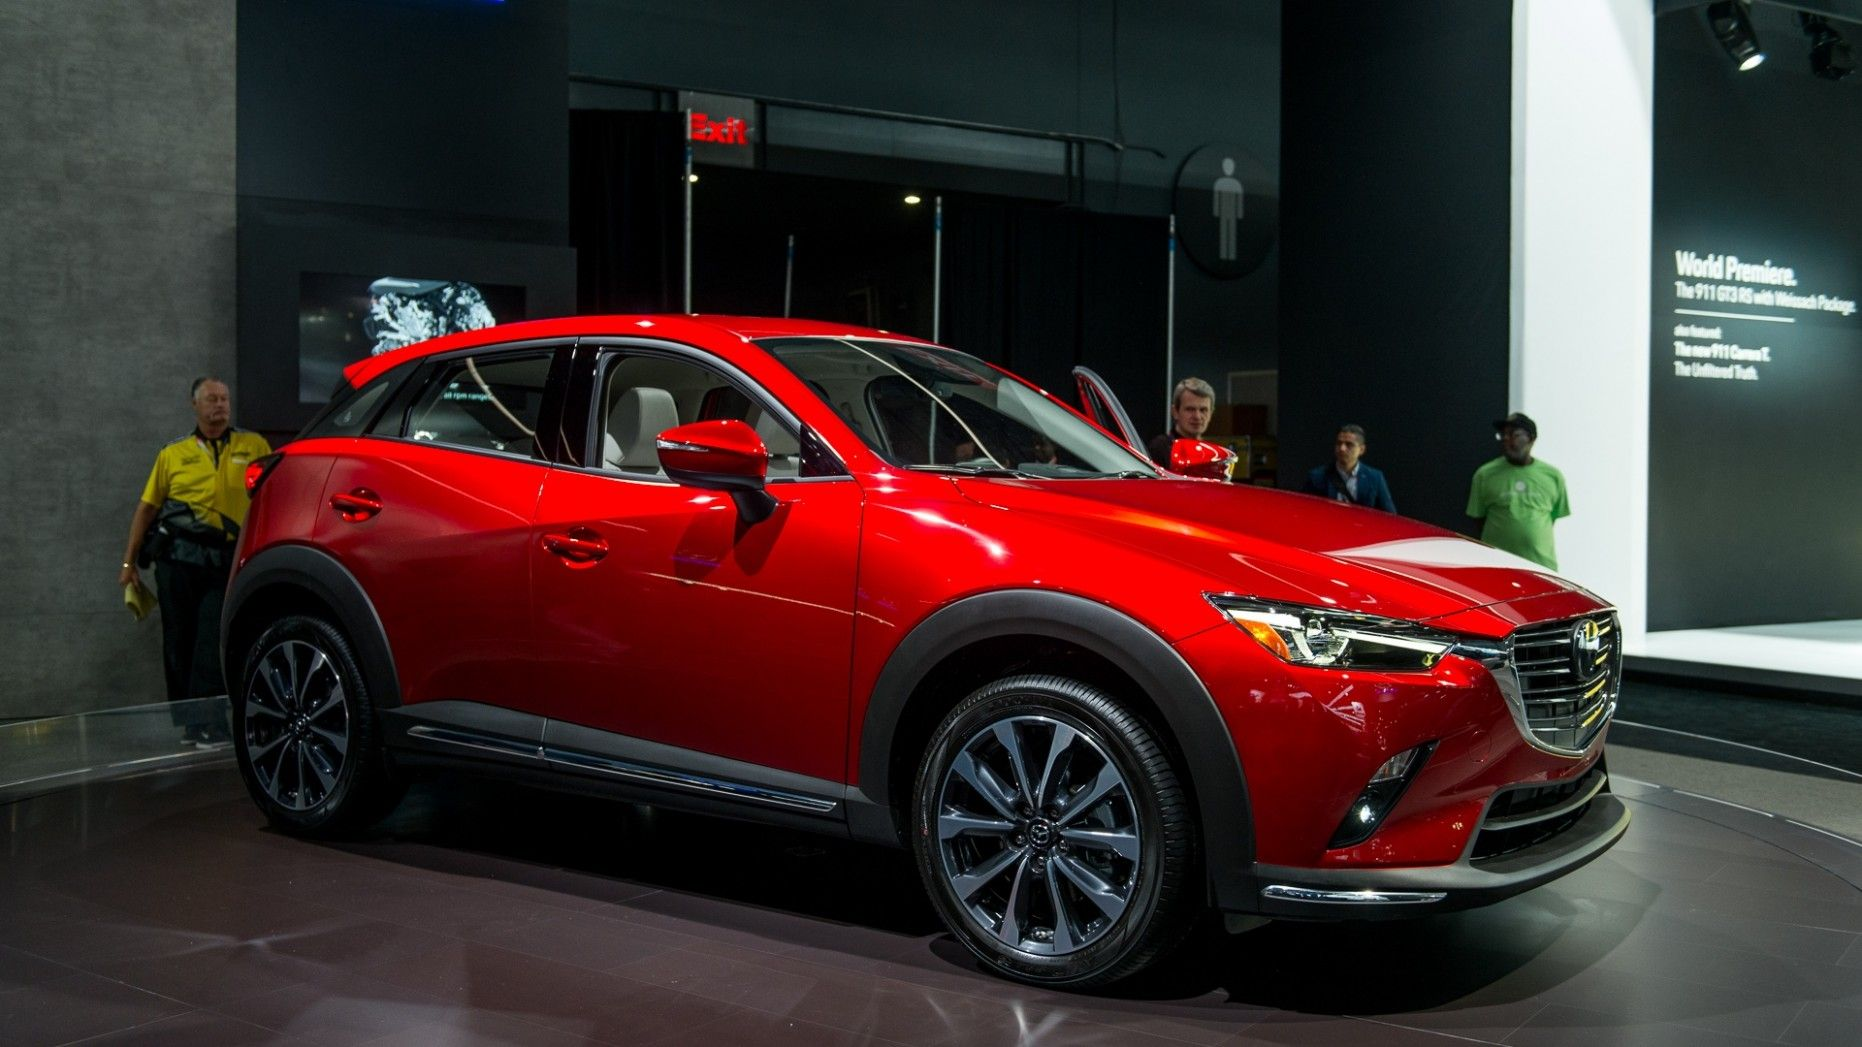 2021 Mazda CX3 Picture in 2020 Mazda, Mazda cx3, Car